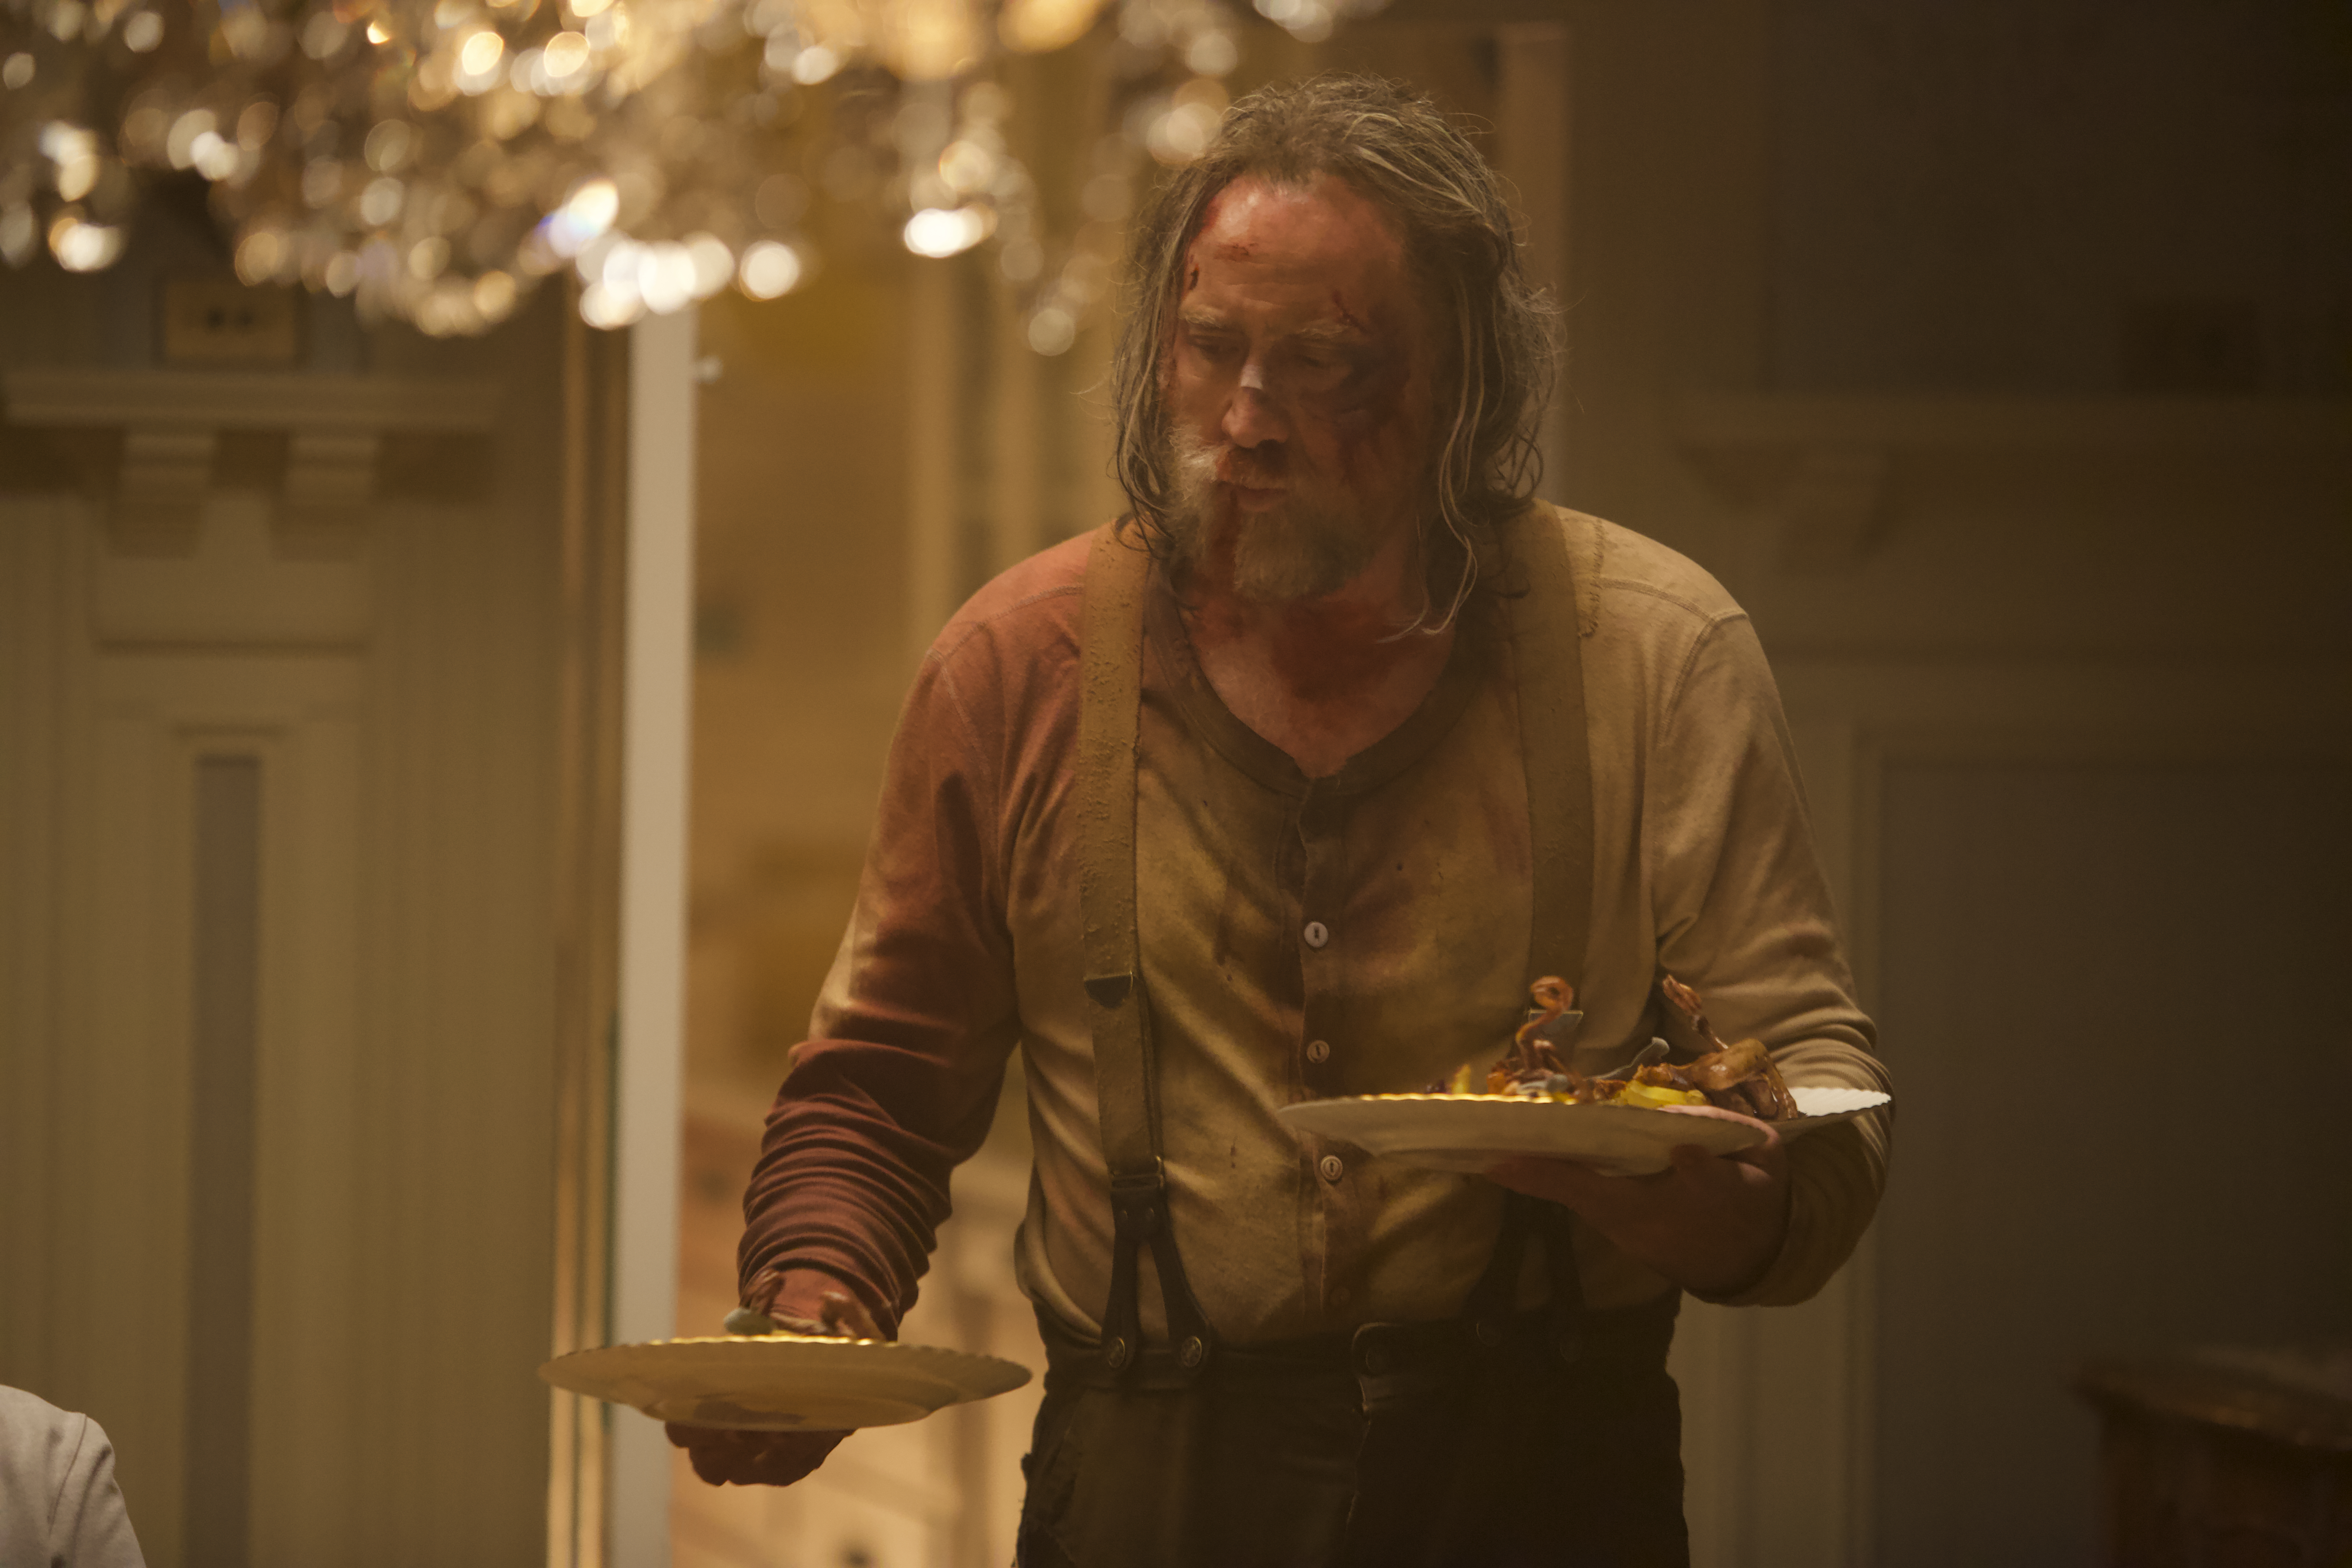 A still from the movie 'Pig,' featuring Nicolas Cage looking bruised and bloody, carring three plates of food in his arms.